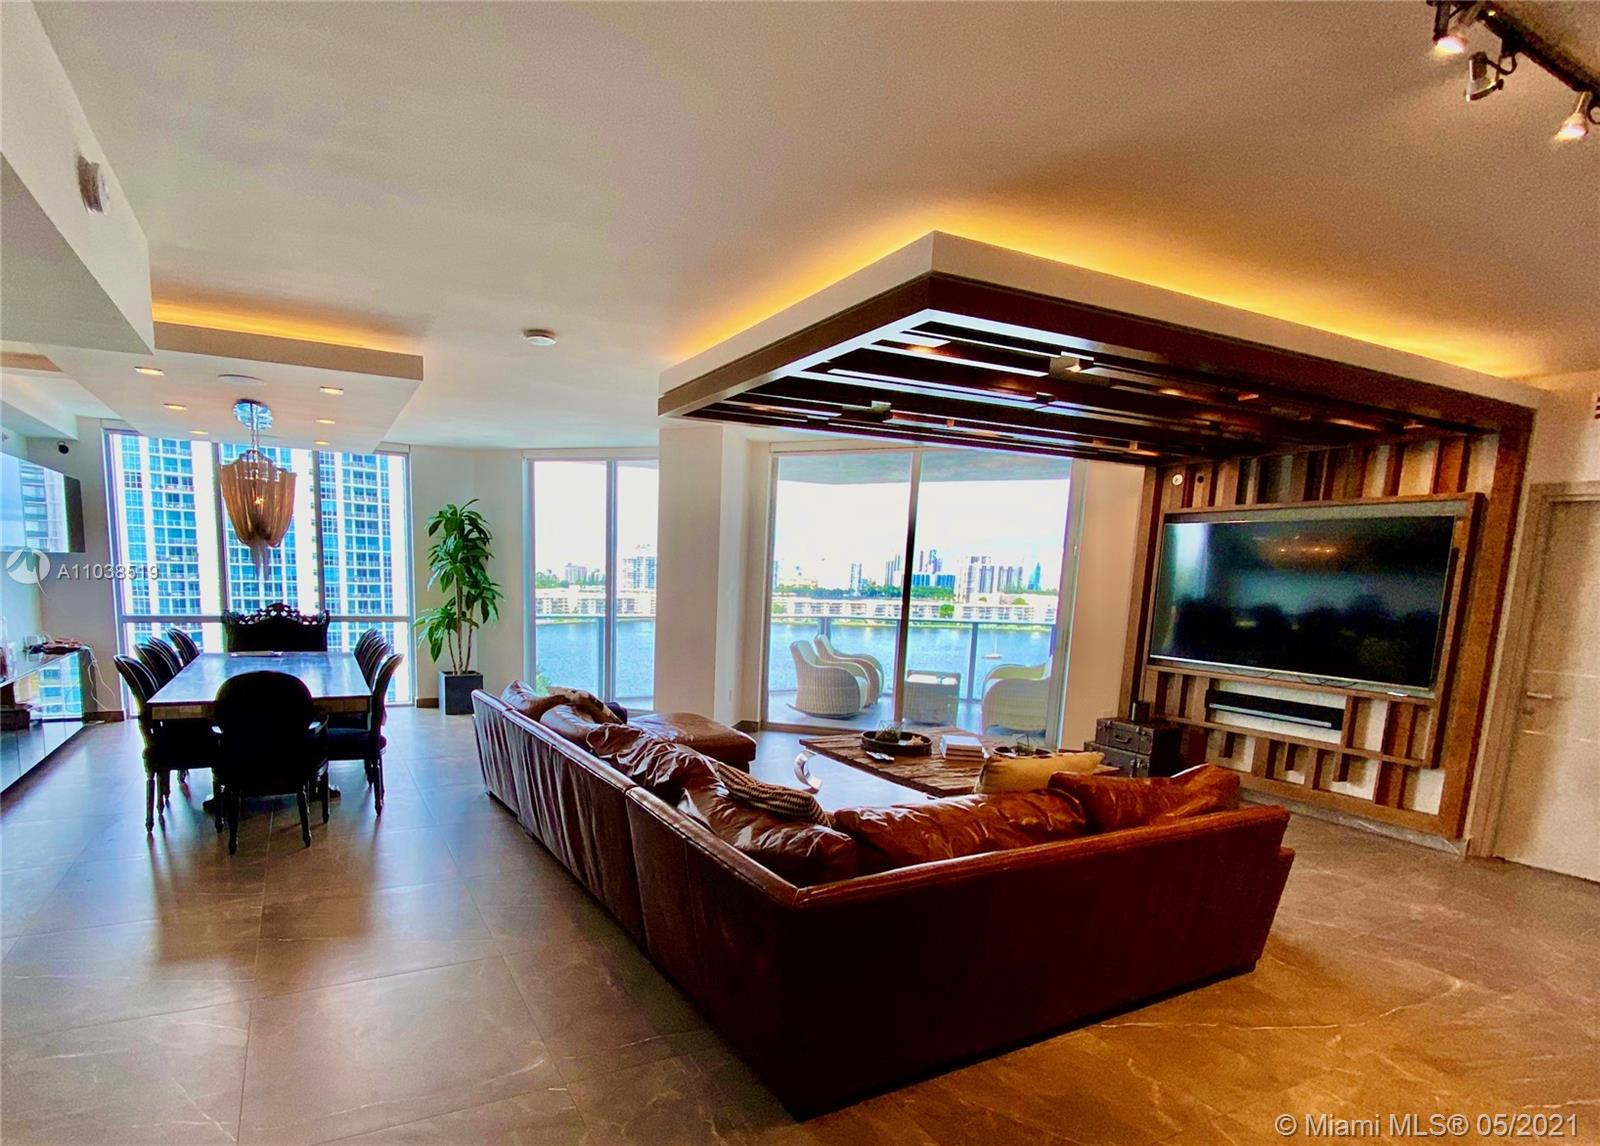 Marina Palms 1 #1405-1407 - 17111 Biscayne Blvd #1405-1407, North Miami Beach, FL 33160